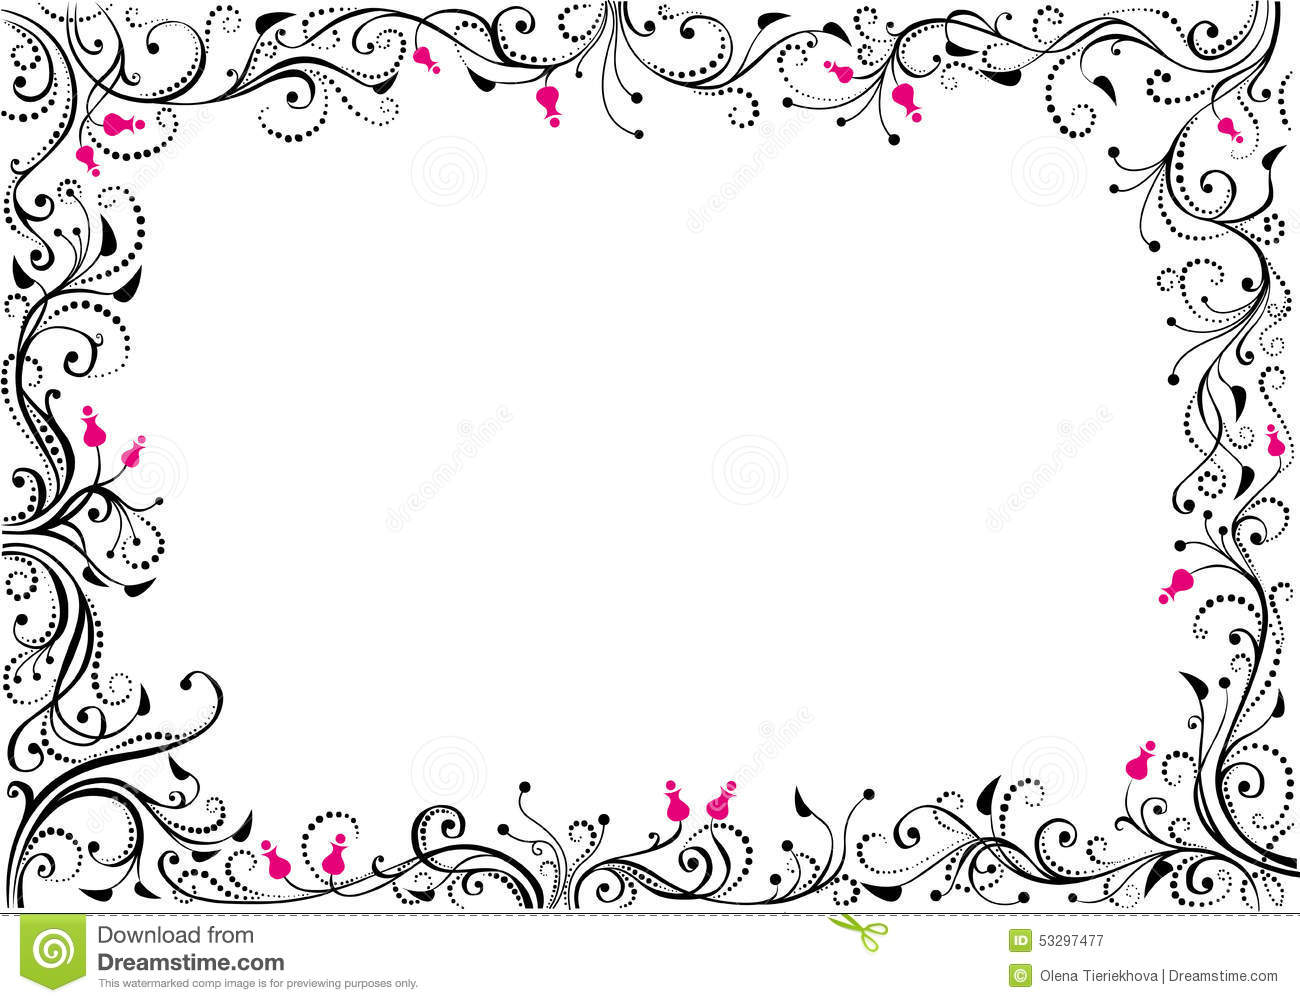 Red flowers border vector stock image - Floral Border Stock Vector Image 53297477